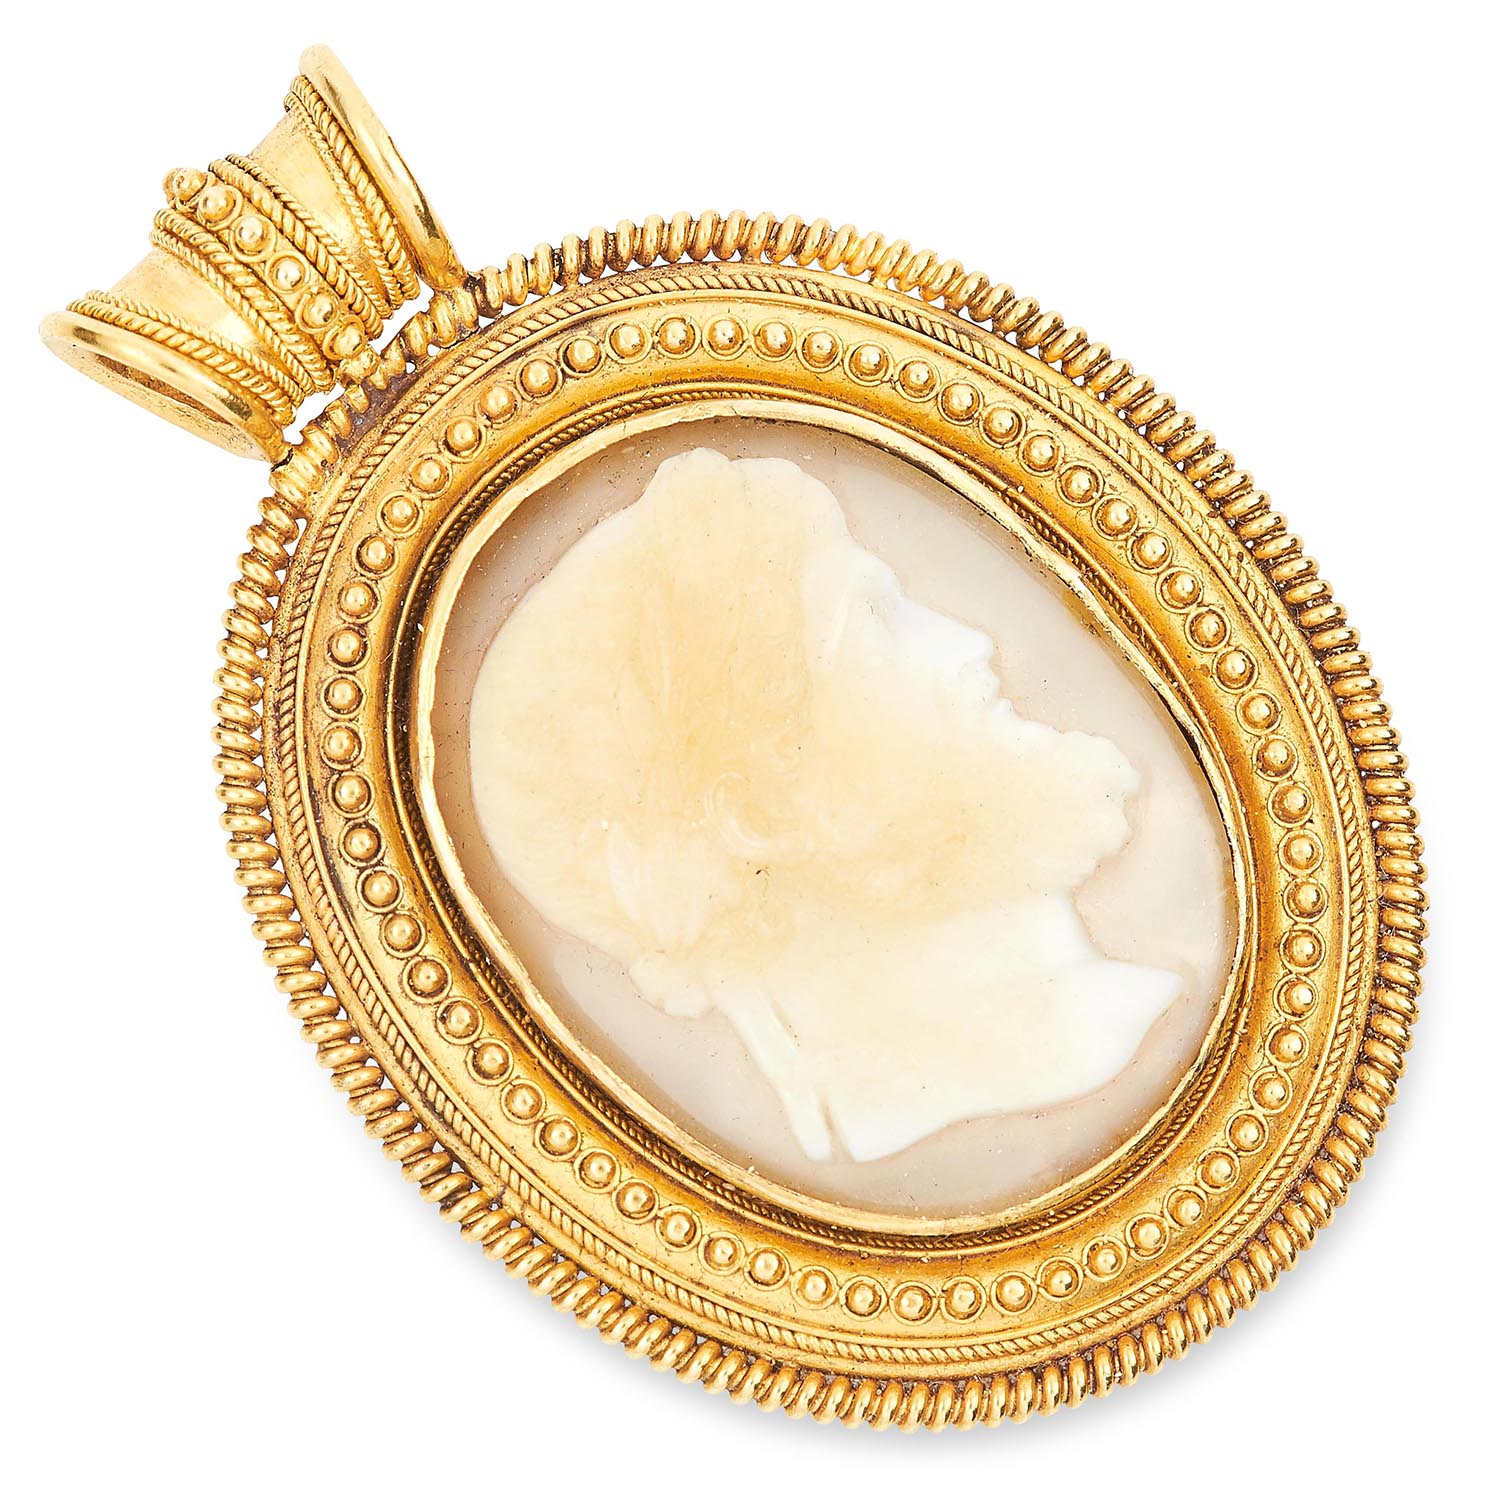 ANTIQUE CARVED CAMEO PENDANT in high carat yellow gold, in Etruscan revival form set with a carved